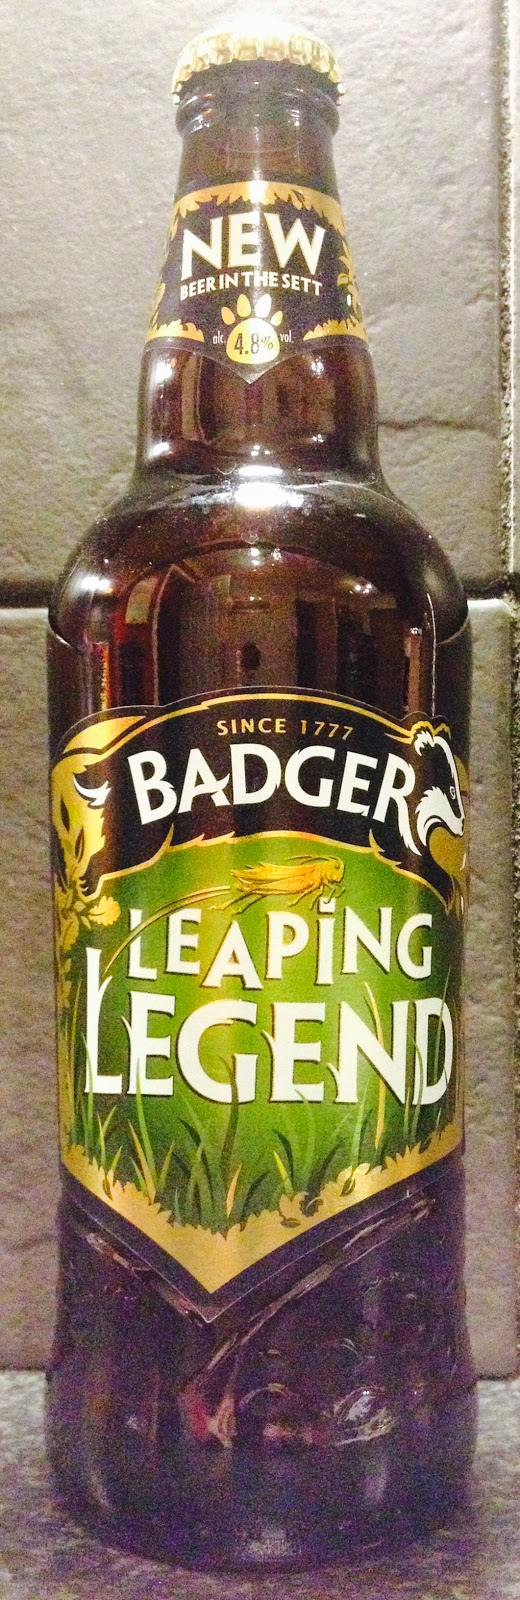 Leaping Legend (Badger)